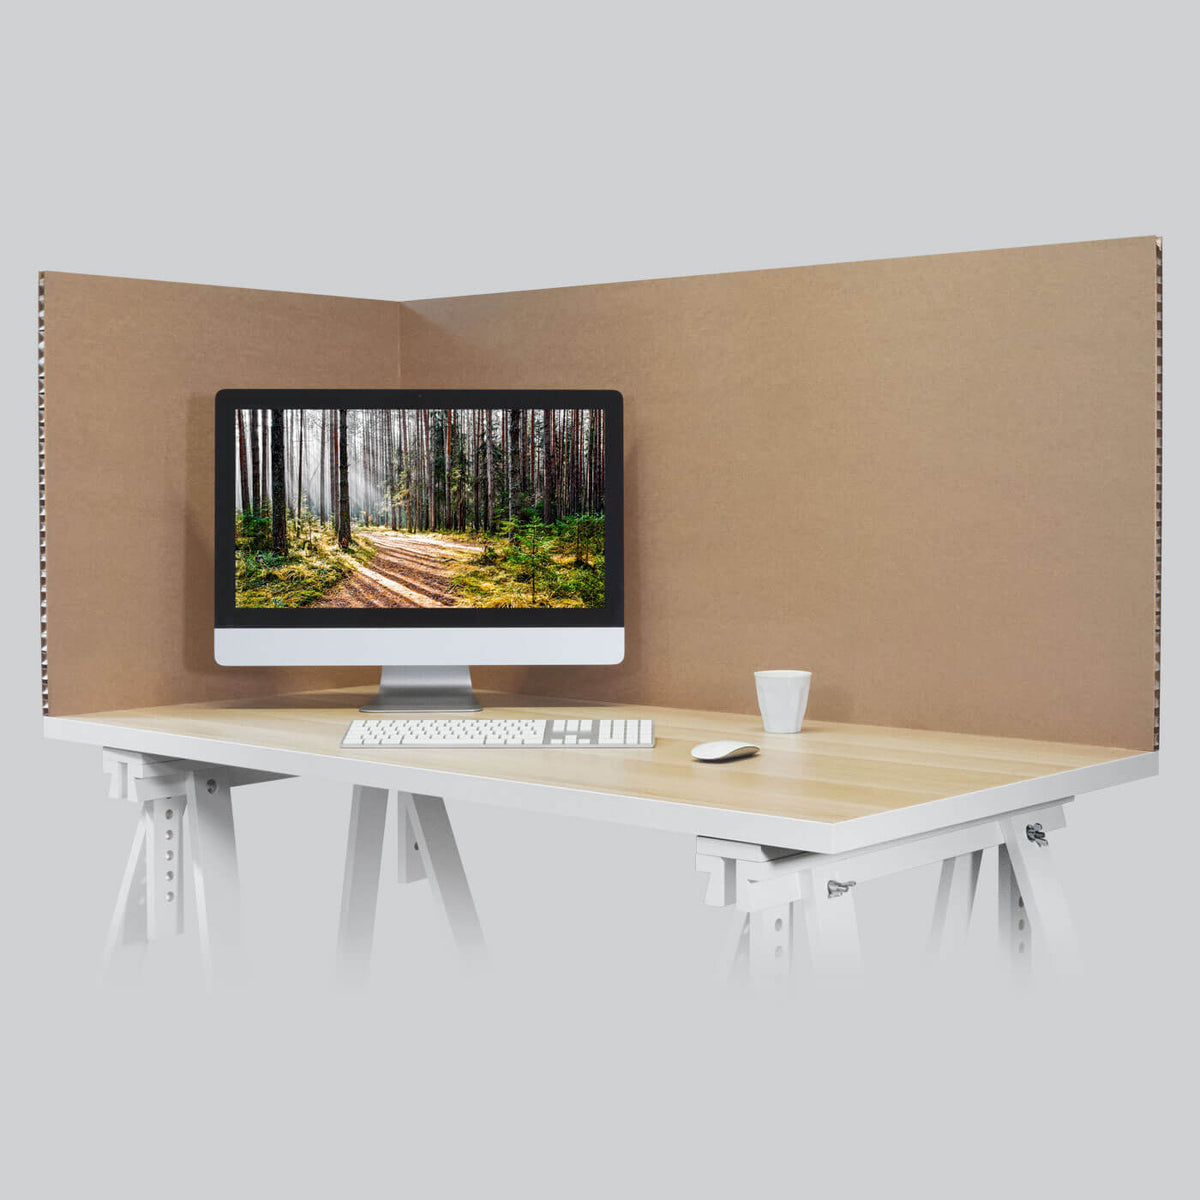 Protective office desk screen social distancing solutions by Dufaylite